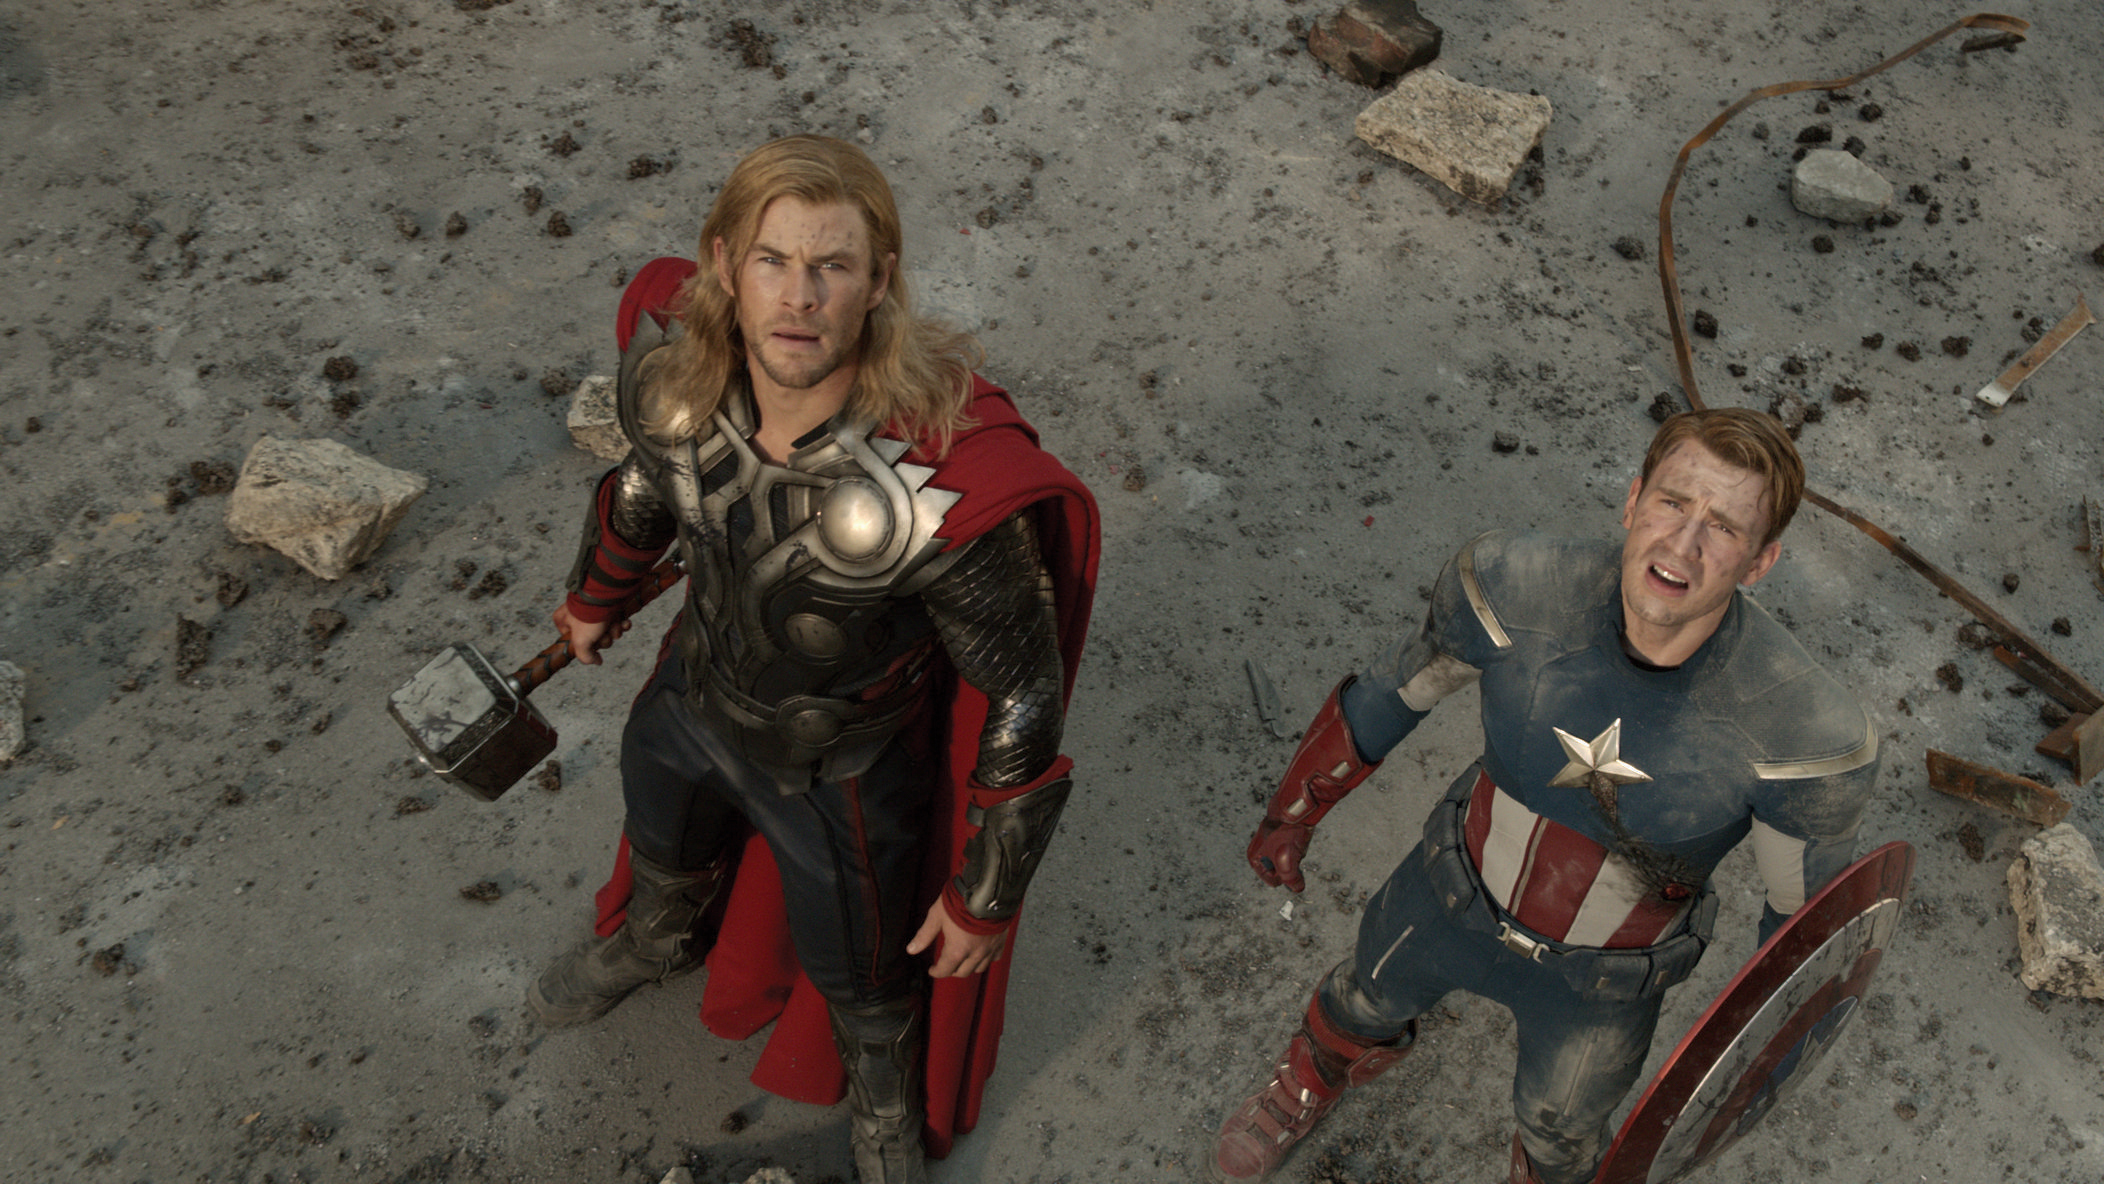 REVIEW: Marvel's The Avengers Lives Up to the Hype For Fans and Newbies